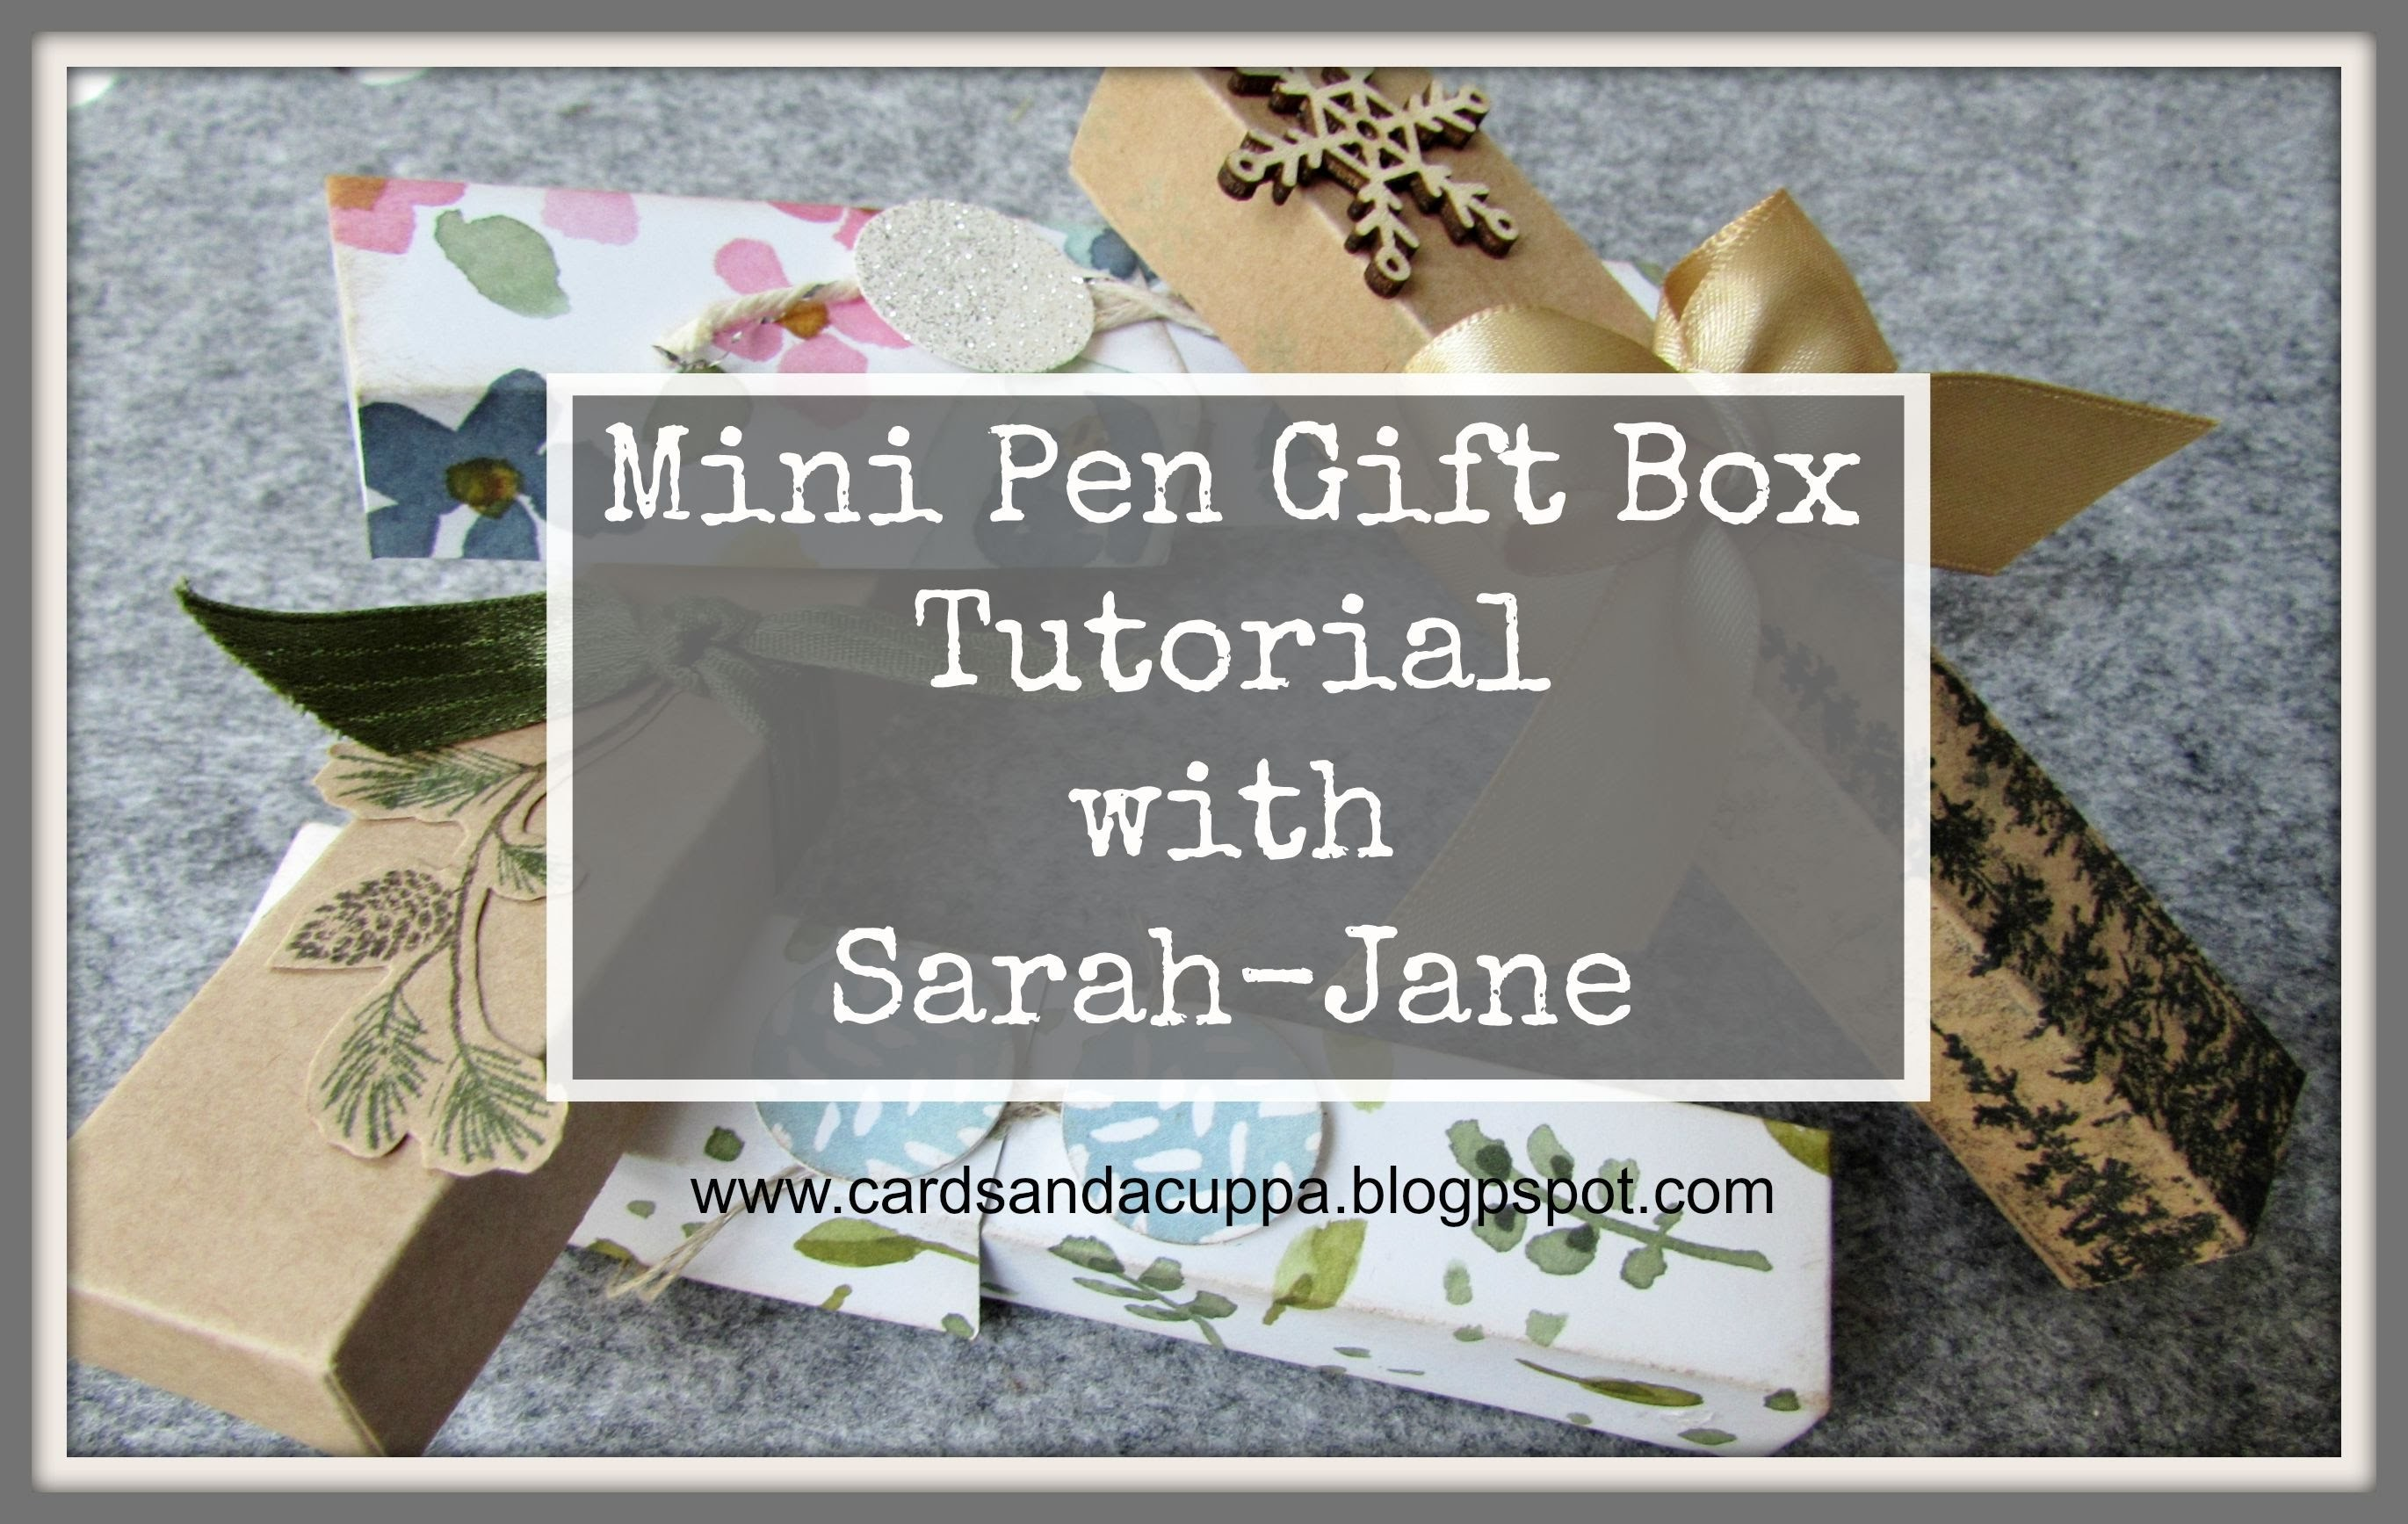 Mini Pen Holder Tutorial using Stampin' Up! Supplies